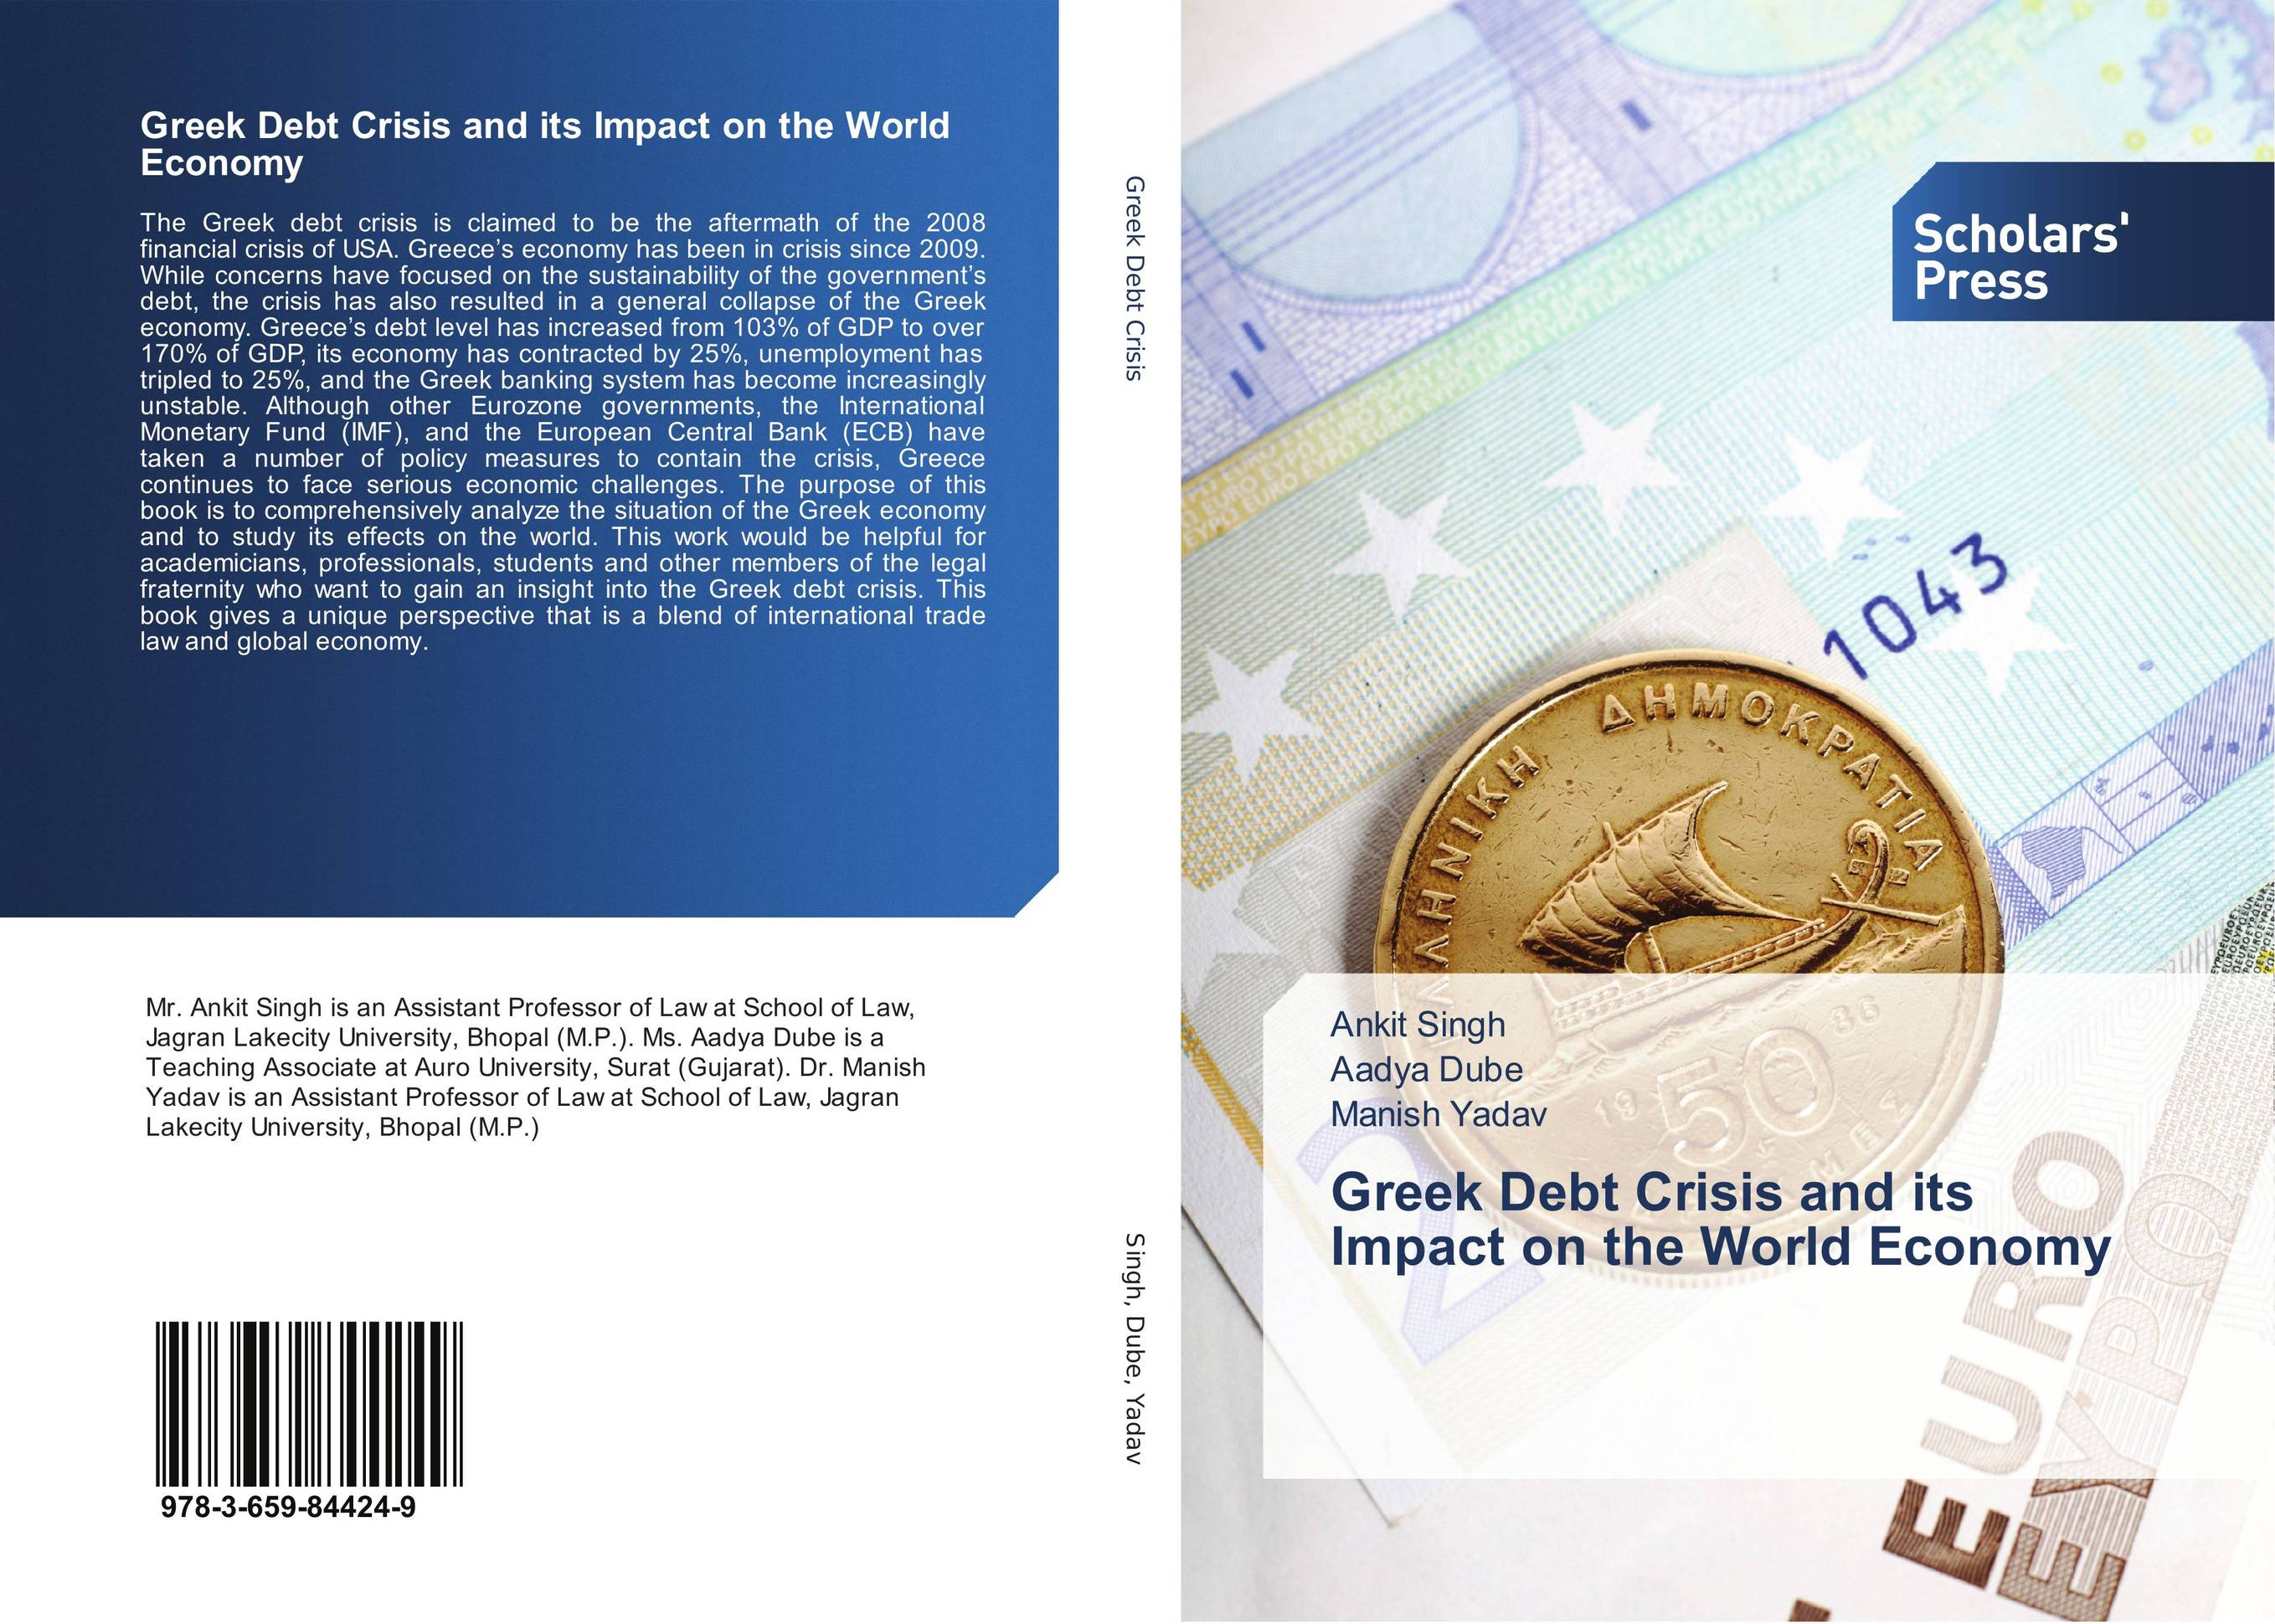 the euro and its impact on the Impact on the euro if greece leaves if it is eventually forced to leave the euro area due to the inability to sustain its debt, analysts note the exit of greece may cause at least momentary shock and volatility in global markets.